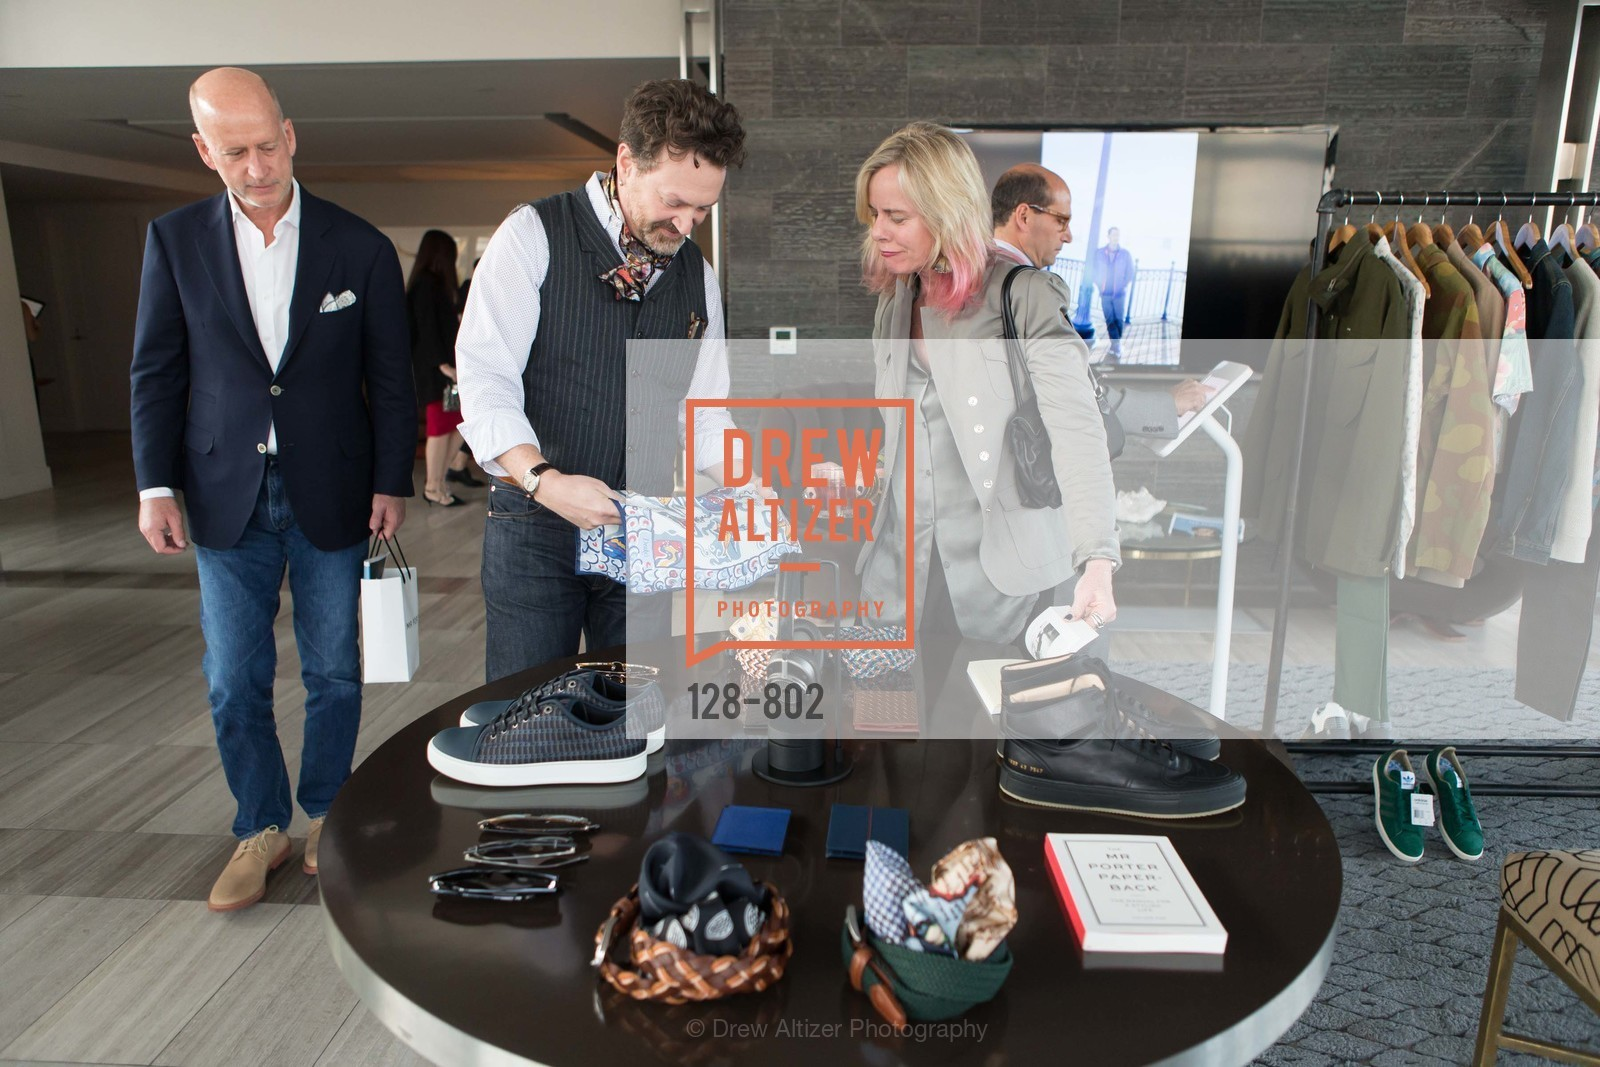 Gus Wallbolt, Paul D'Orleans, Susan McLaughlin, MR PORTER Celebrate The San Francisco Issue of The Journal, US, April 24th, 2015,Drew Altizer, Drew Altizer Photography, full-service agency, private events, San Francisco photographer, photographer california